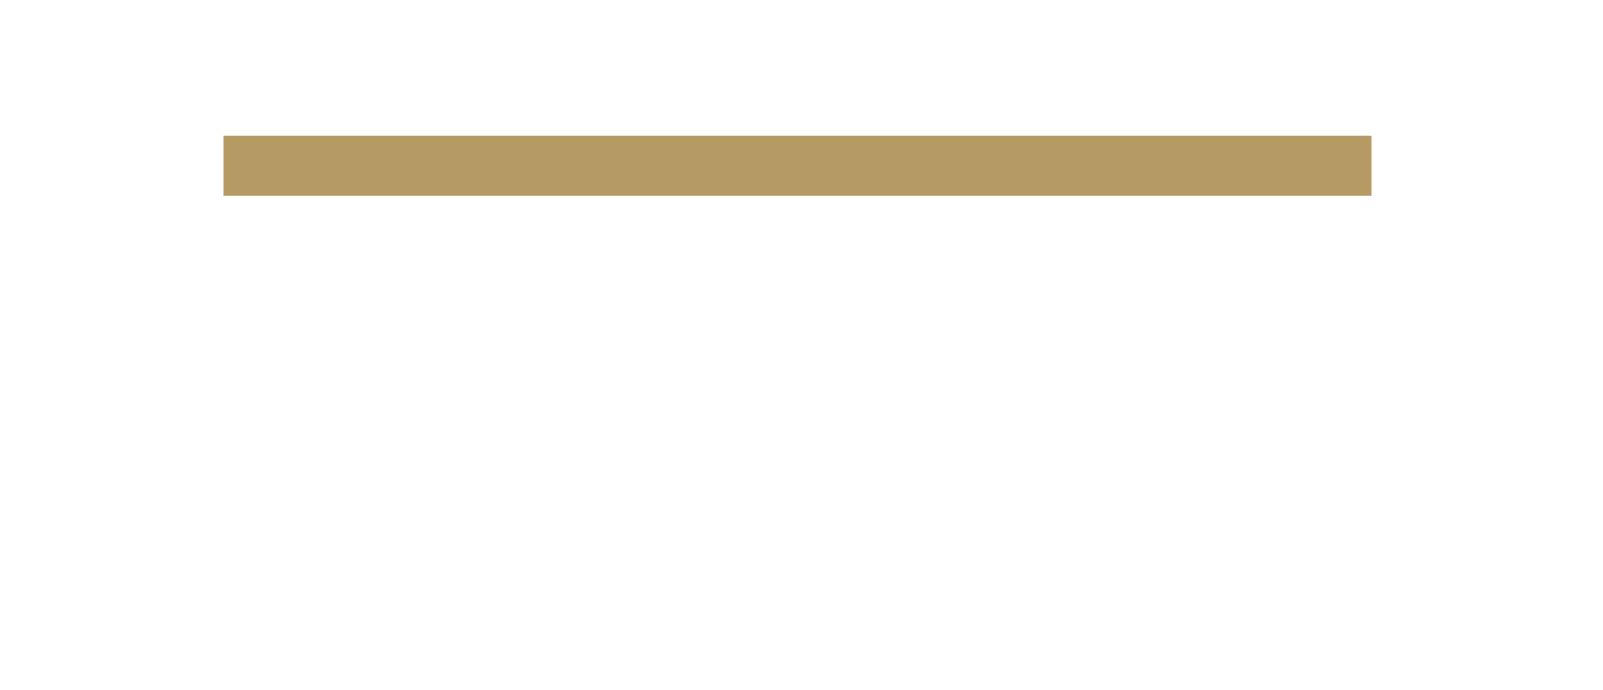 Stewards Capital Group Logo